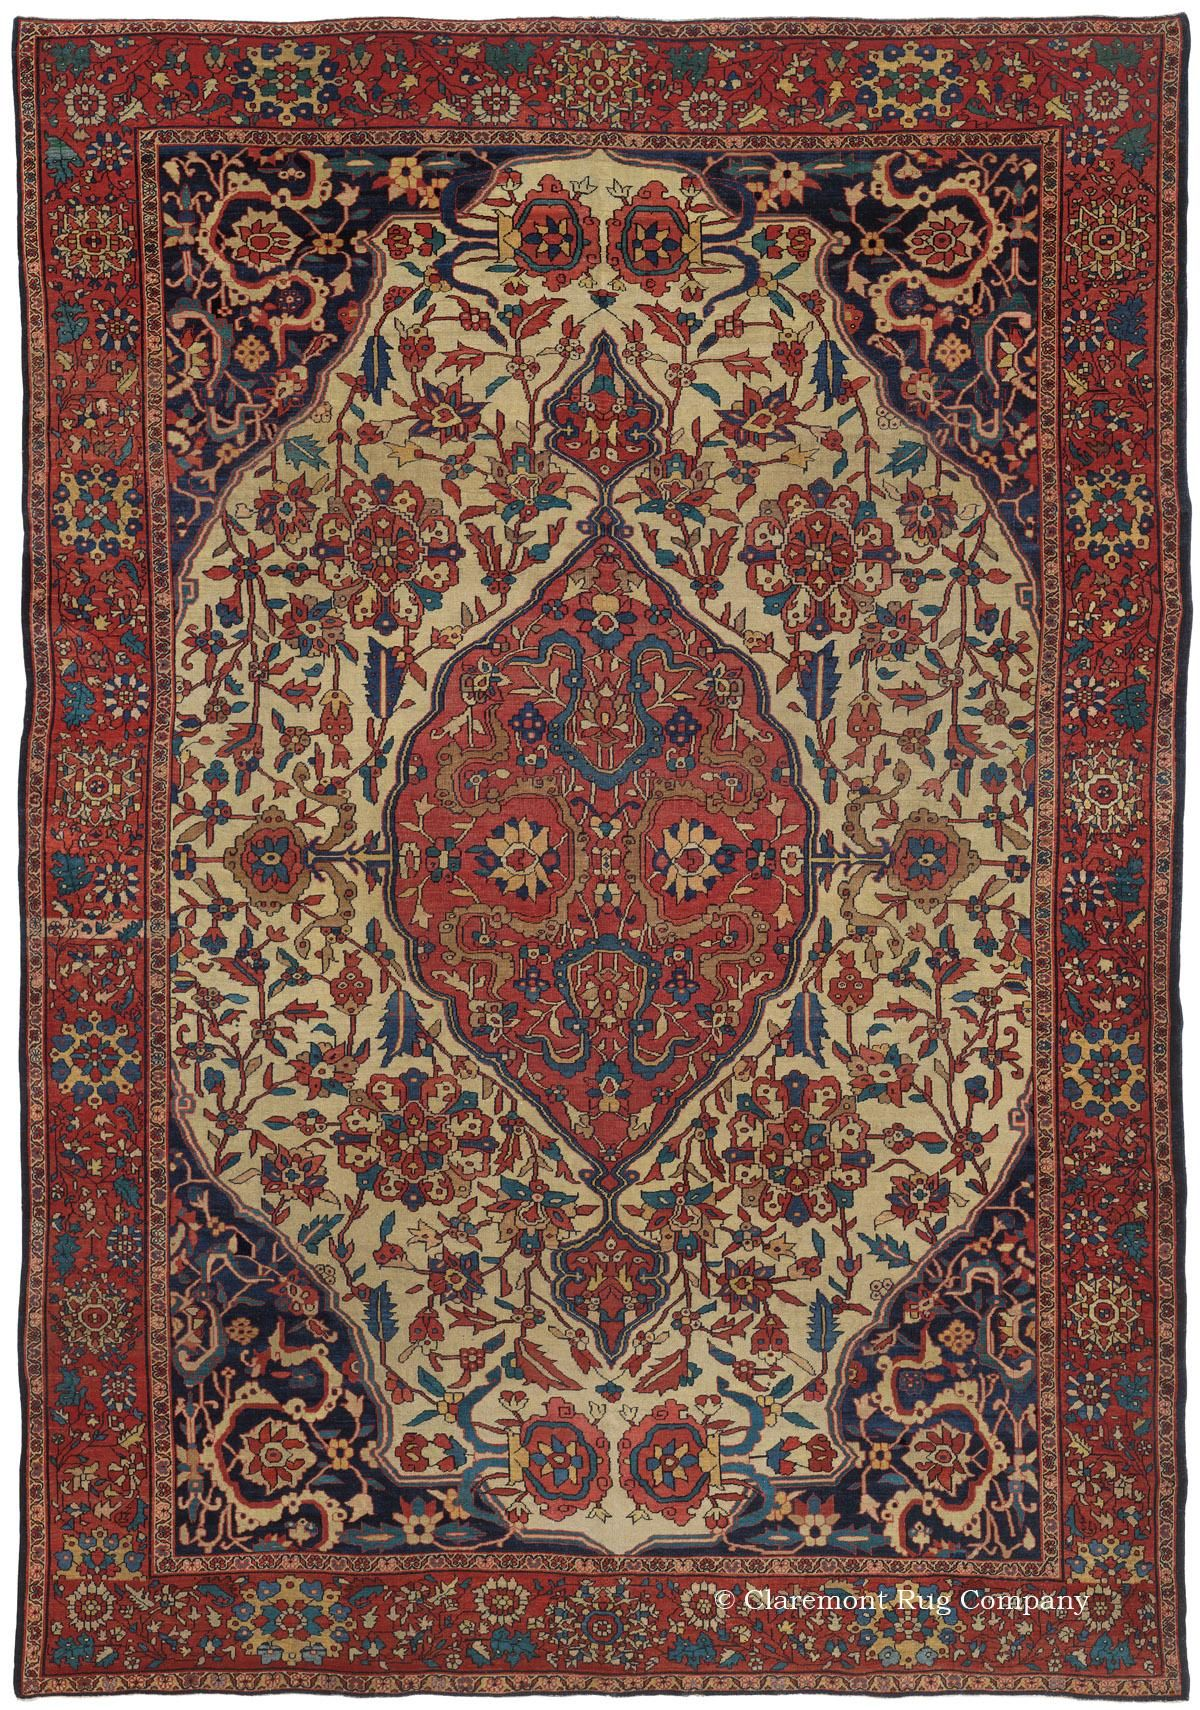 Ferahan Sarouk West Central Persian 6ft 10in X 10ft 0in Circa 1875 Rugs Antique Carpets Rugs On Carpet